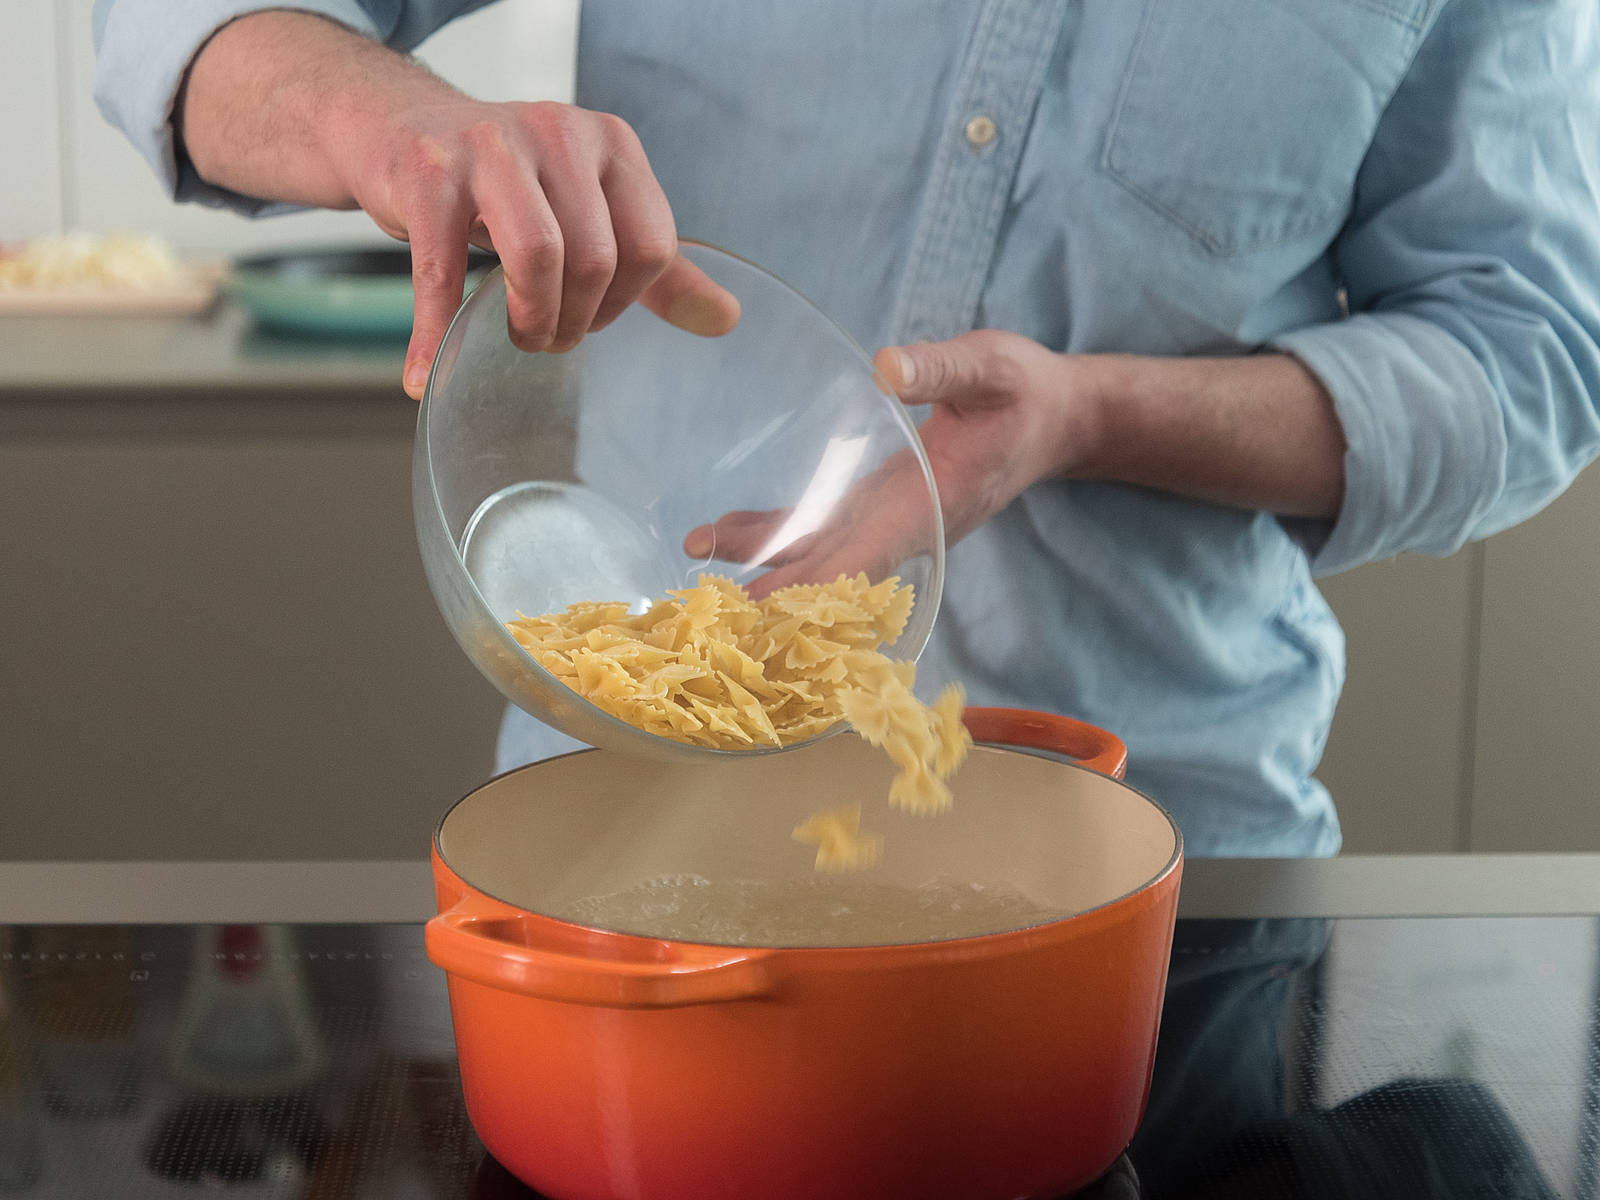 Cook pasta in a large pot with salted water for approx. 8 – 10 min., until al dente.